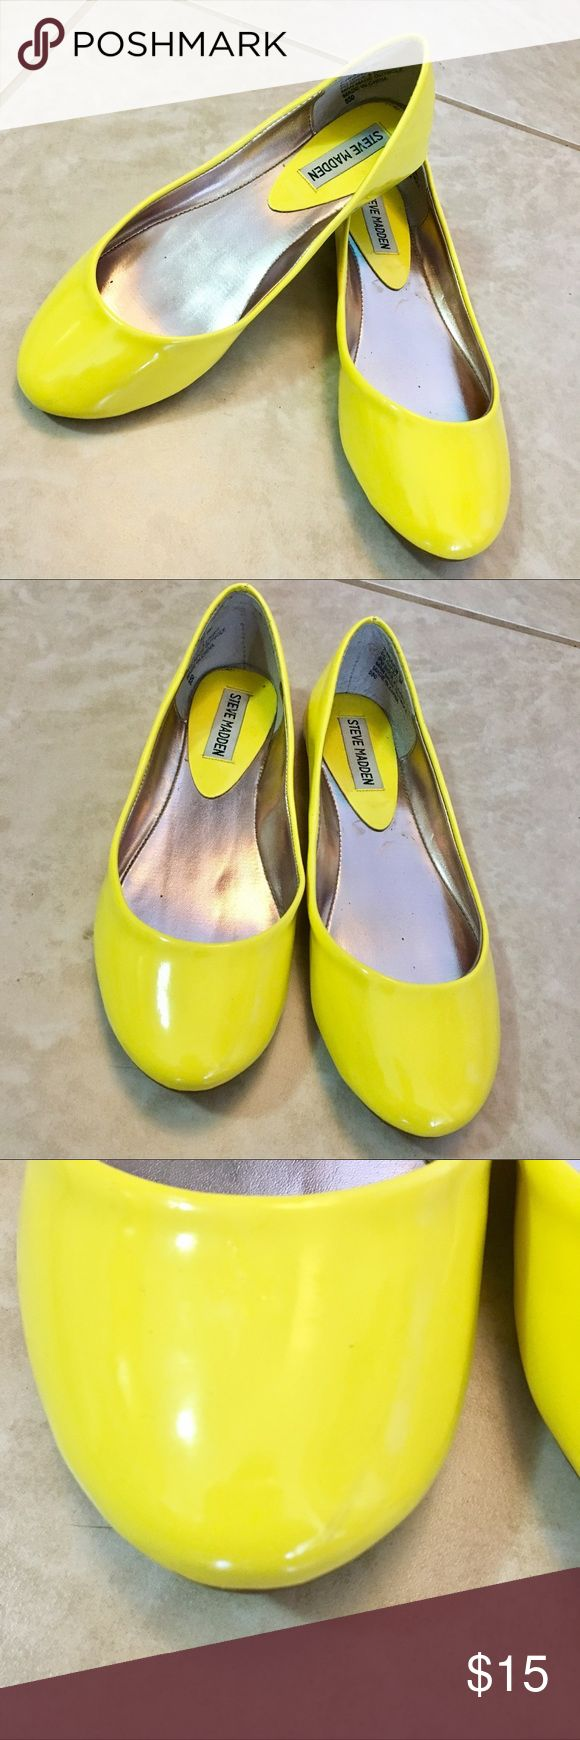 Steve Madden bright citron/neon yellow flats Steve Madden bright citron/neon yellow flats! Small scuff on front shown in photos. Like new and only worn once. Super cute with neon yellow shorts and a blazer! 😎 wider fit, fits like a smaller 6.5 so listed as such, but could fit both 6-6.5 Steve Madden Shoes Flats & Loafers